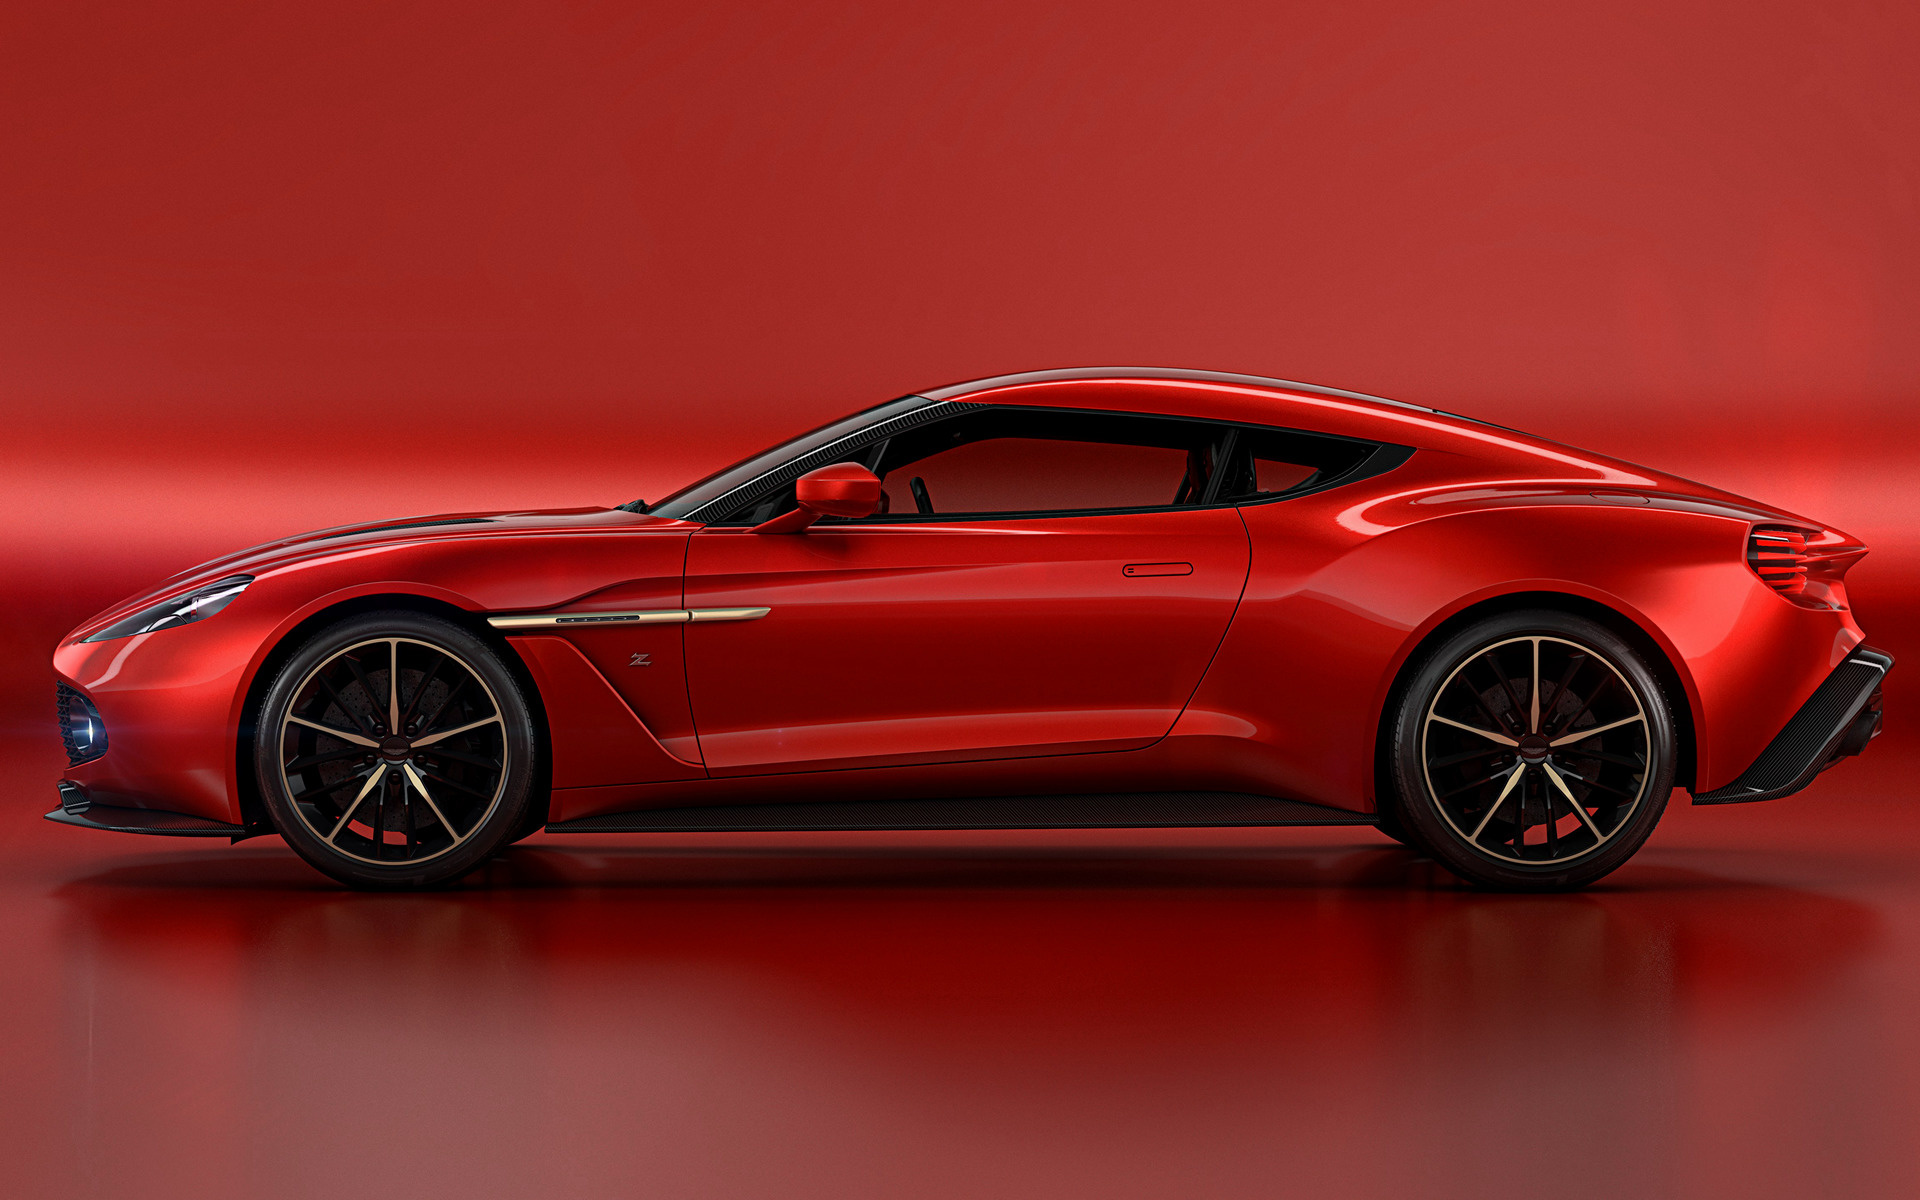 2016 Aston Martin Vanquish Zagato   Wallpapers and HD Images Car 1920x1200